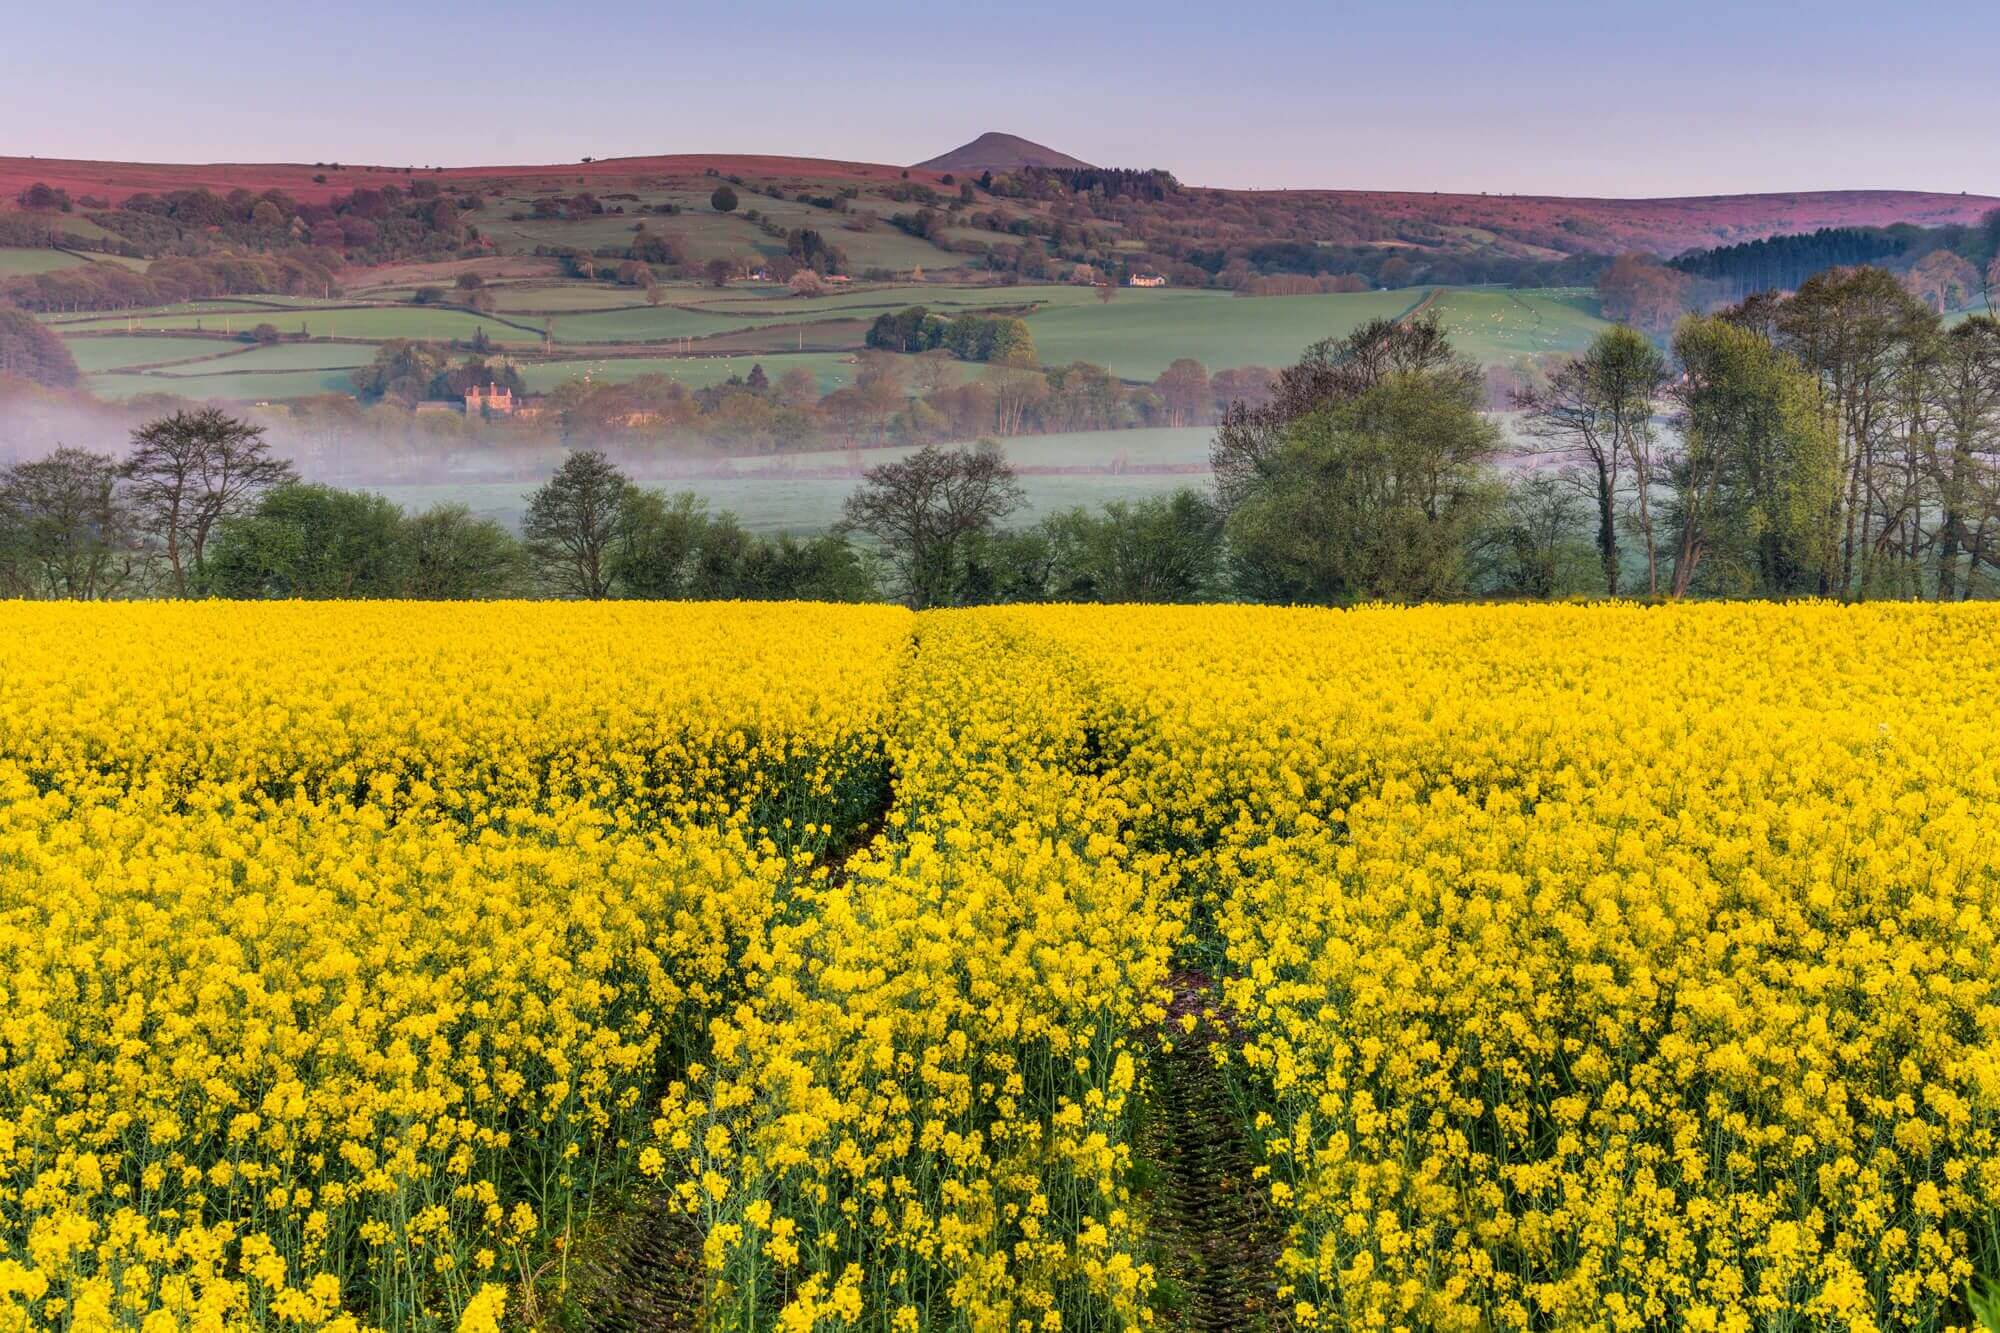 Rapeseed Field at The Foot of Sugarloaf